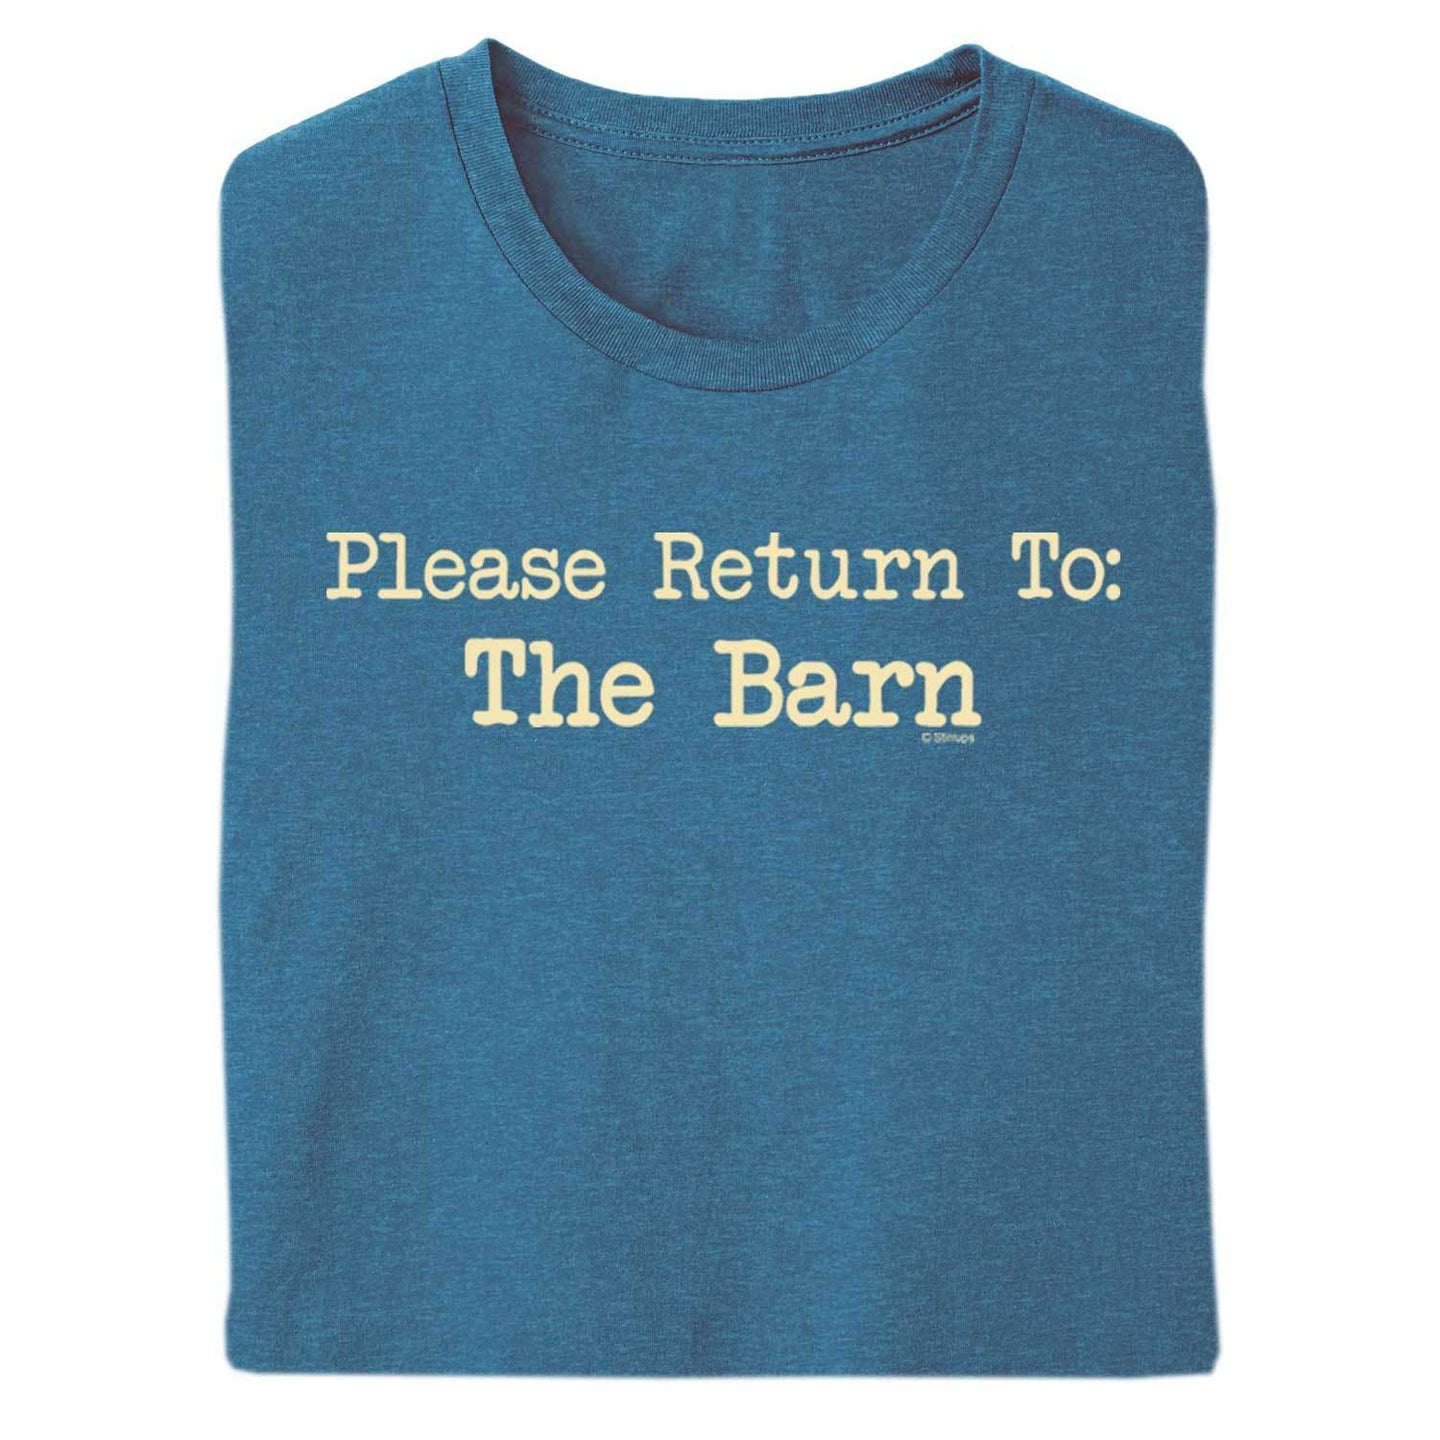 Please Return To Barn Adult Short Sleeve Tee 20141